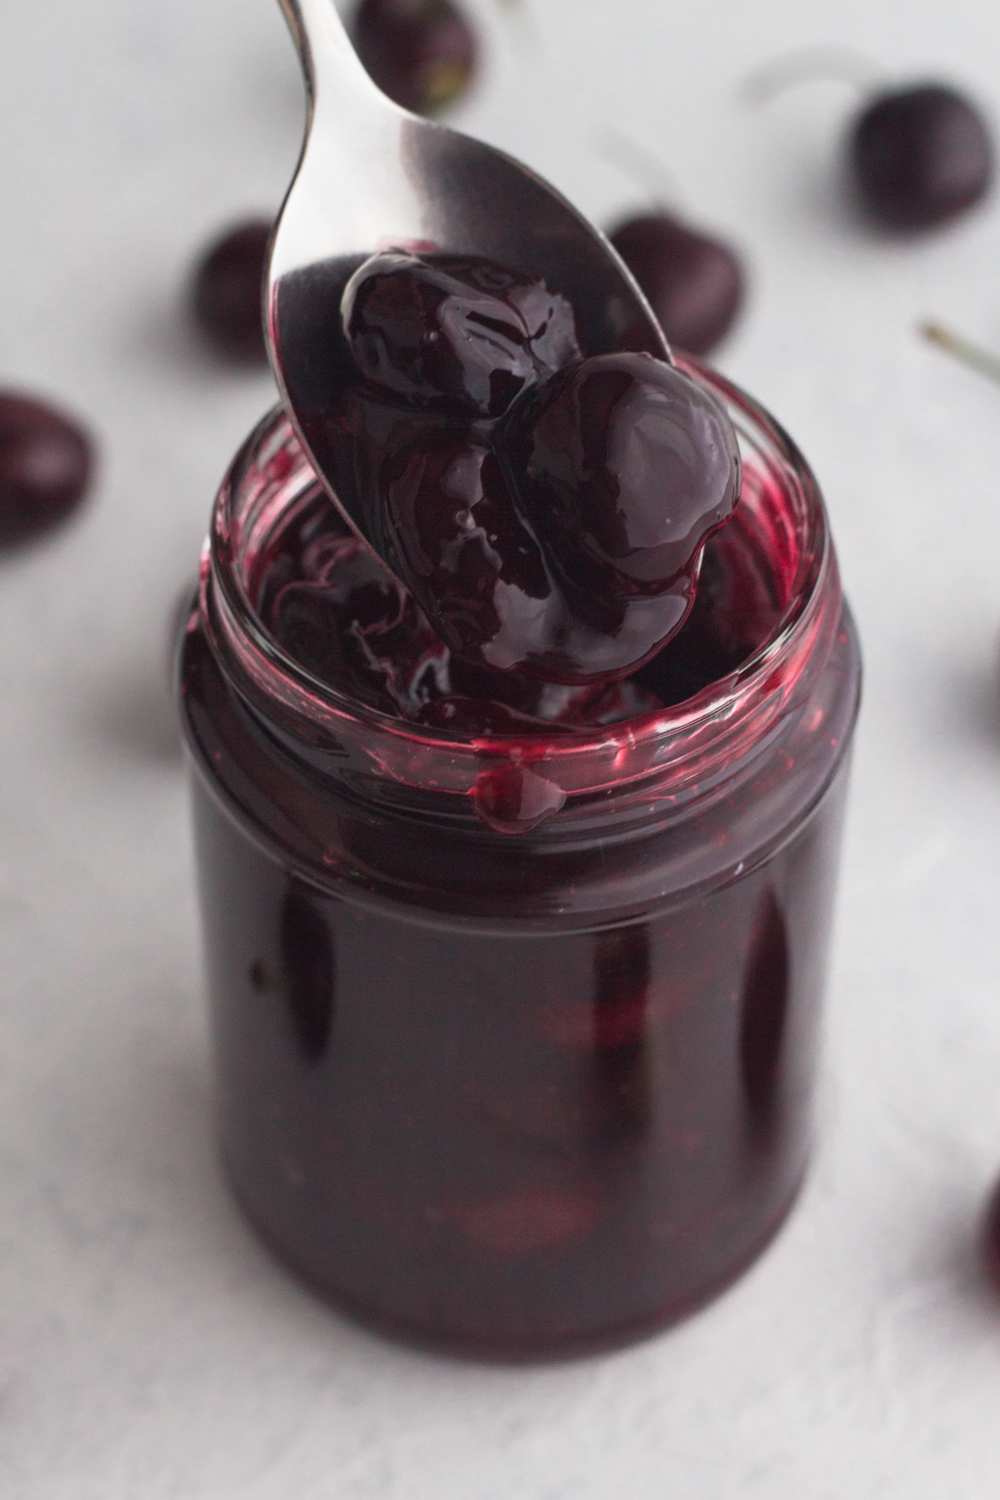 angled view of homemade cherry sauce in a glass jar with a spoon scooping the sauce